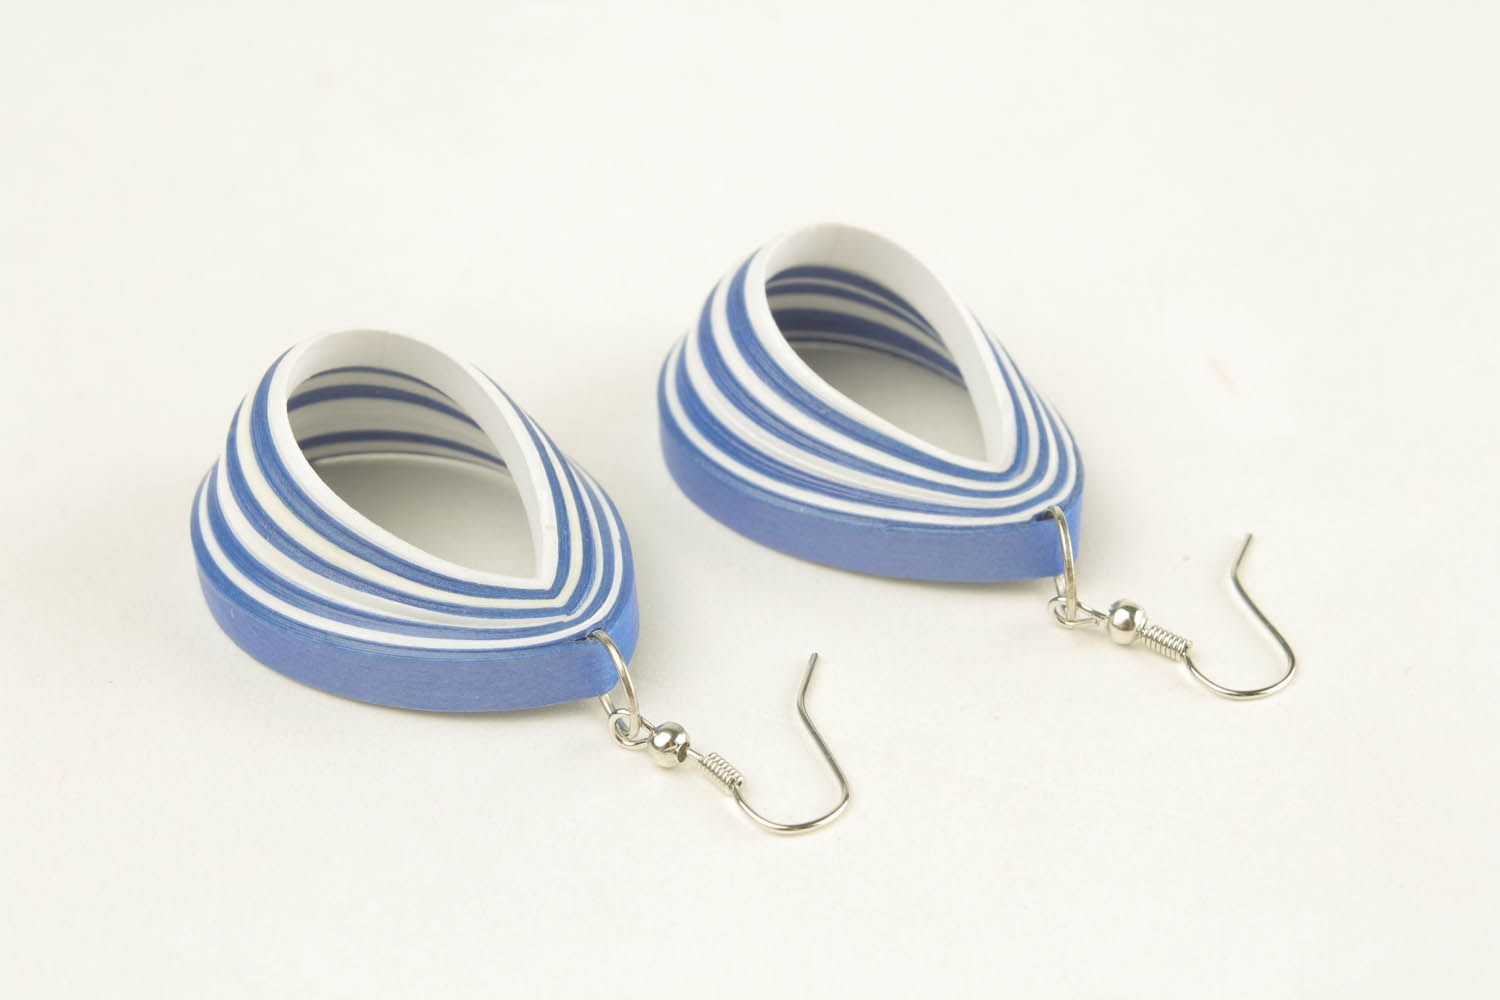 Oval earrings photo 2